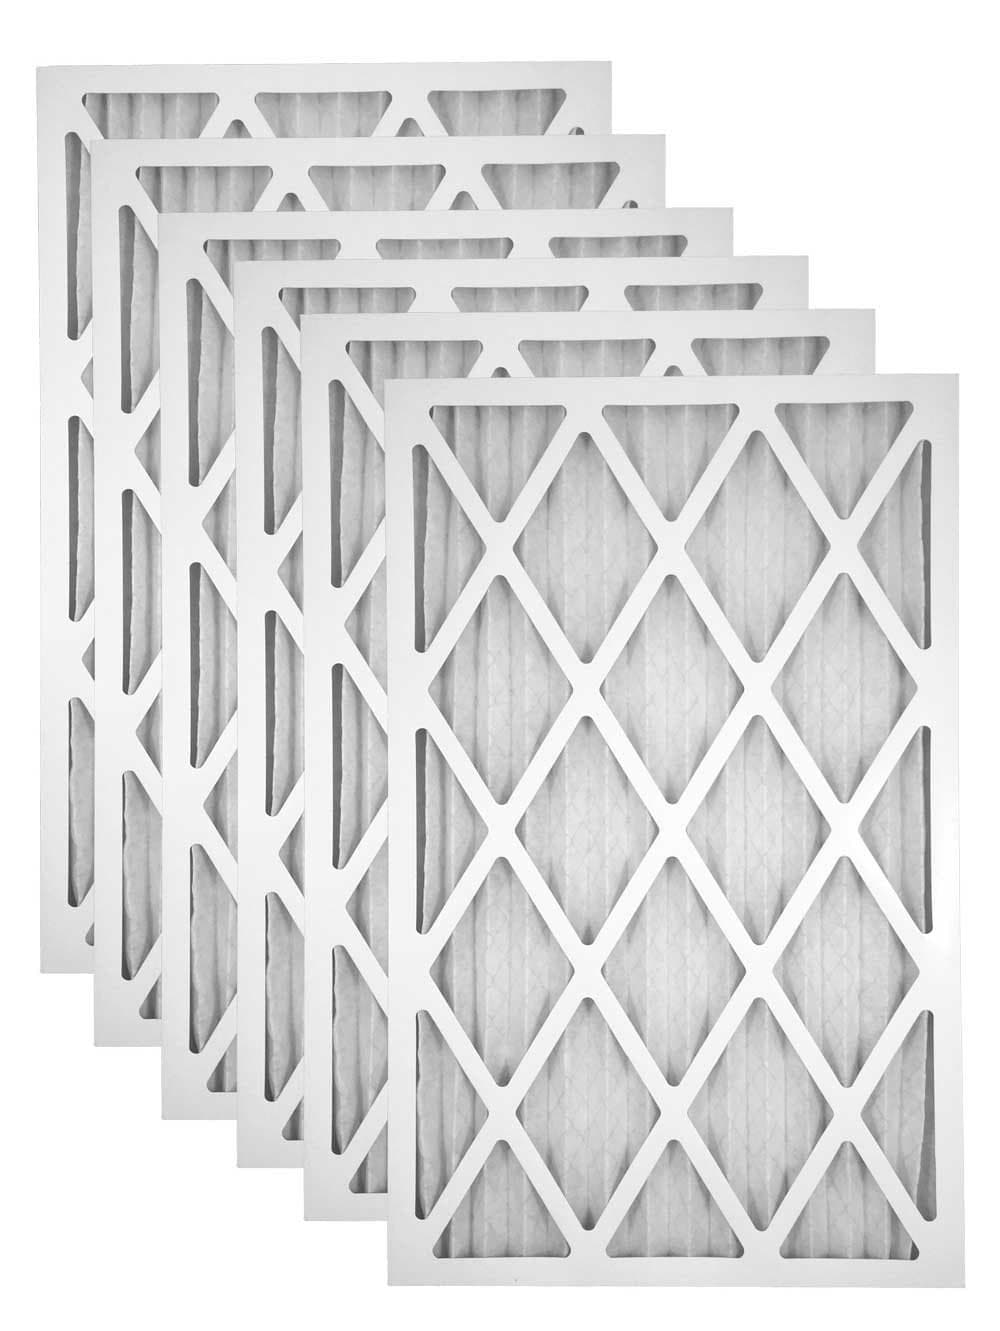 12x30x1 Merv 11 AC Furnace Filter - Case of 6